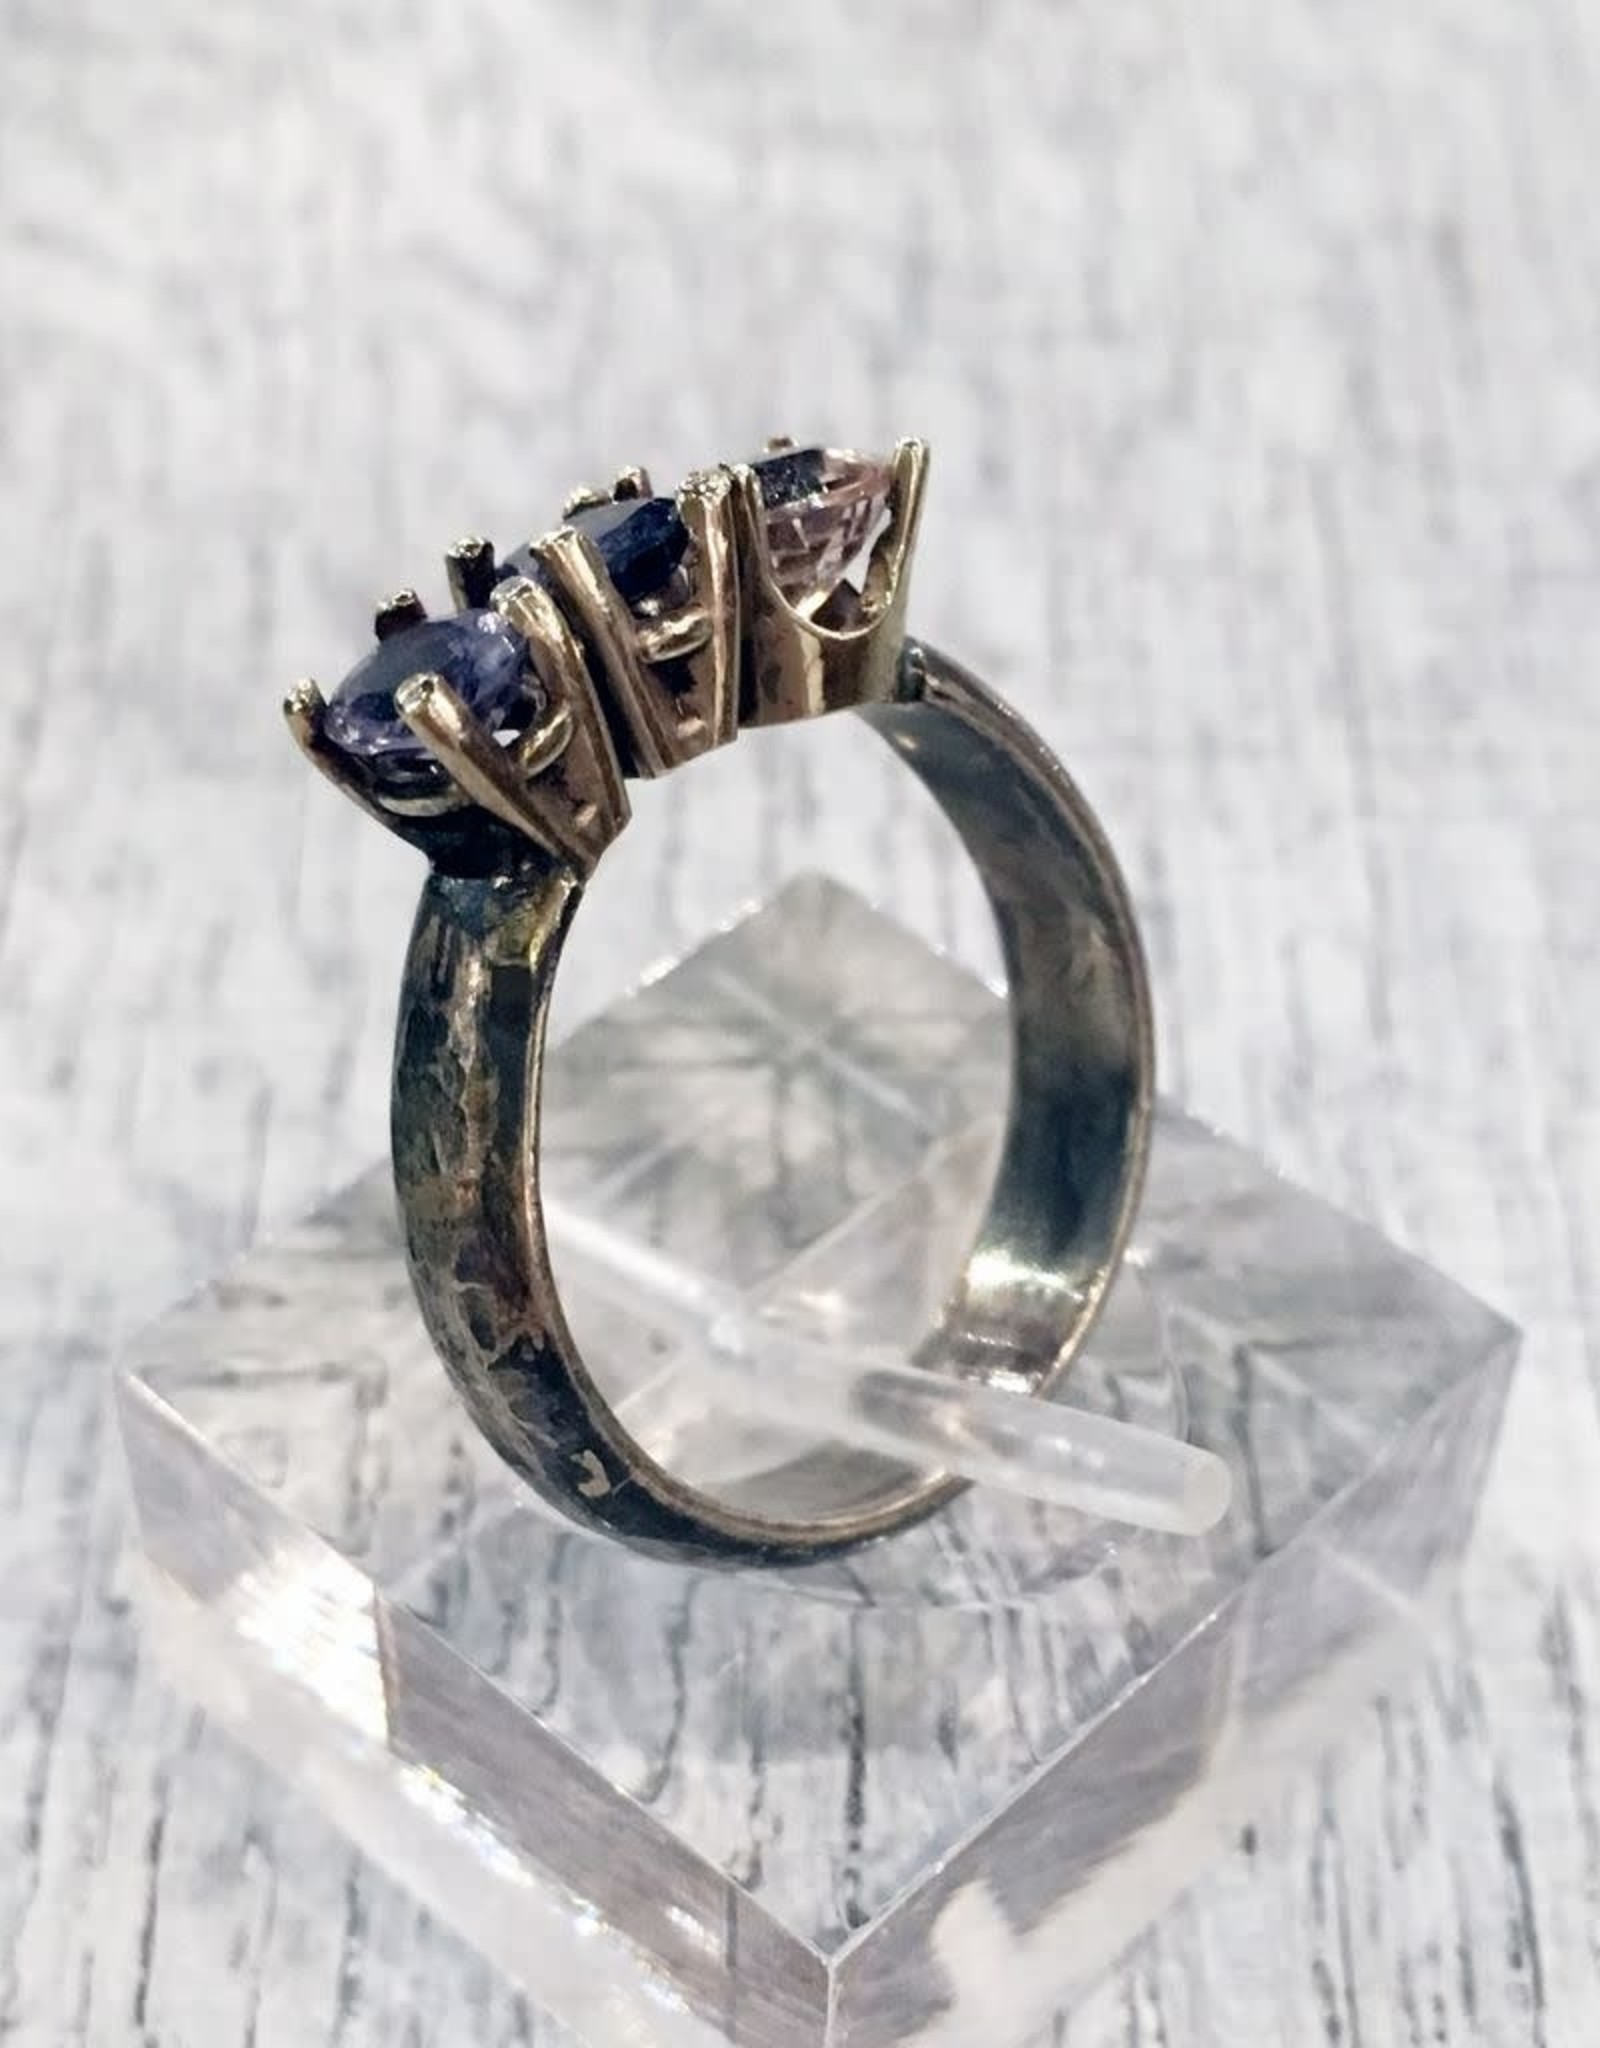 Chris Gillrie Aphrodite Ring. Solid silver band. White Gold Settings with Lolite, Amethyst and Pink Cubic Zirconia stones. Size 8.5